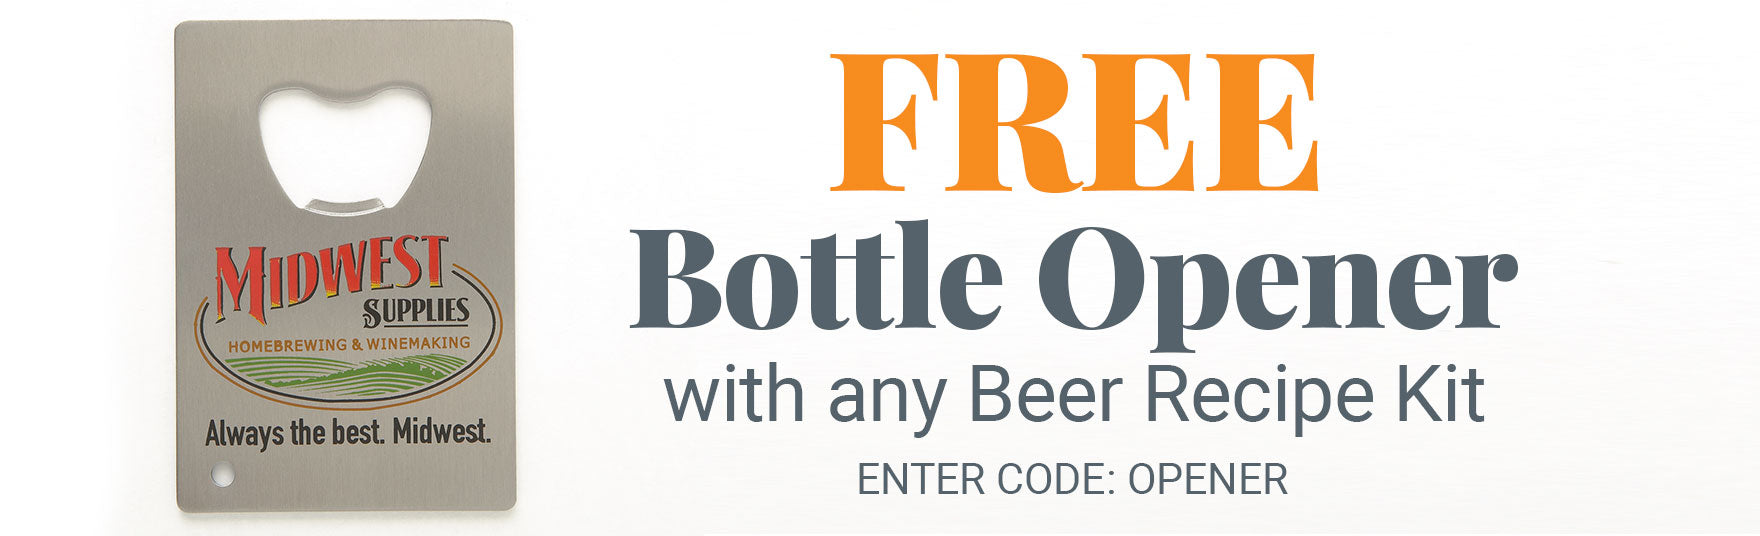 Free Bottle Opener with purchase of Beer Recipe Kit